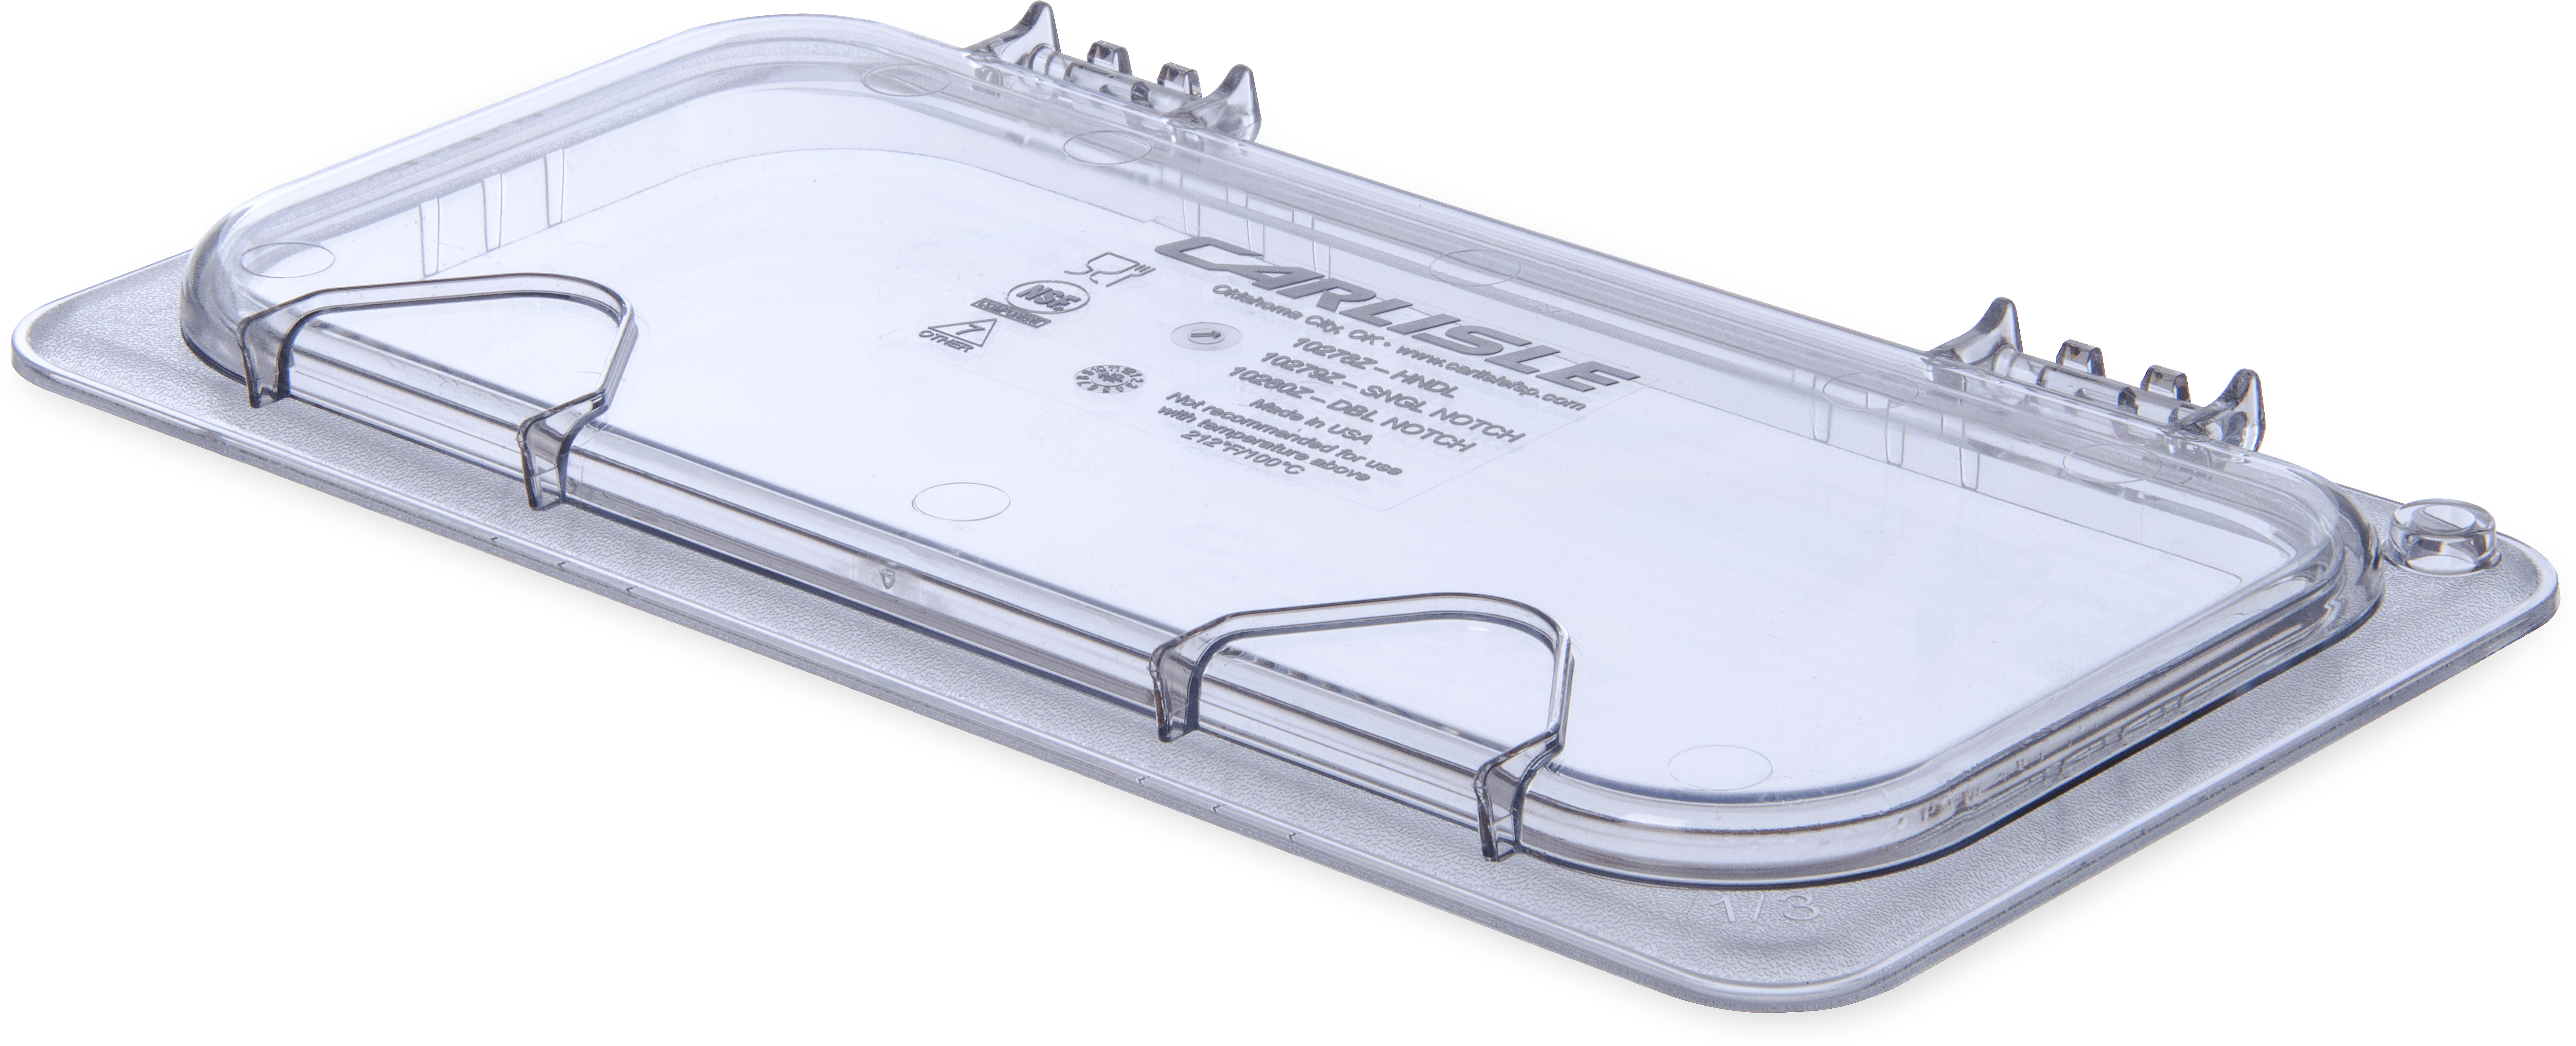 StorPlus EZ Access Hinged Univ Lid with Handle 1/3 Size - Clear